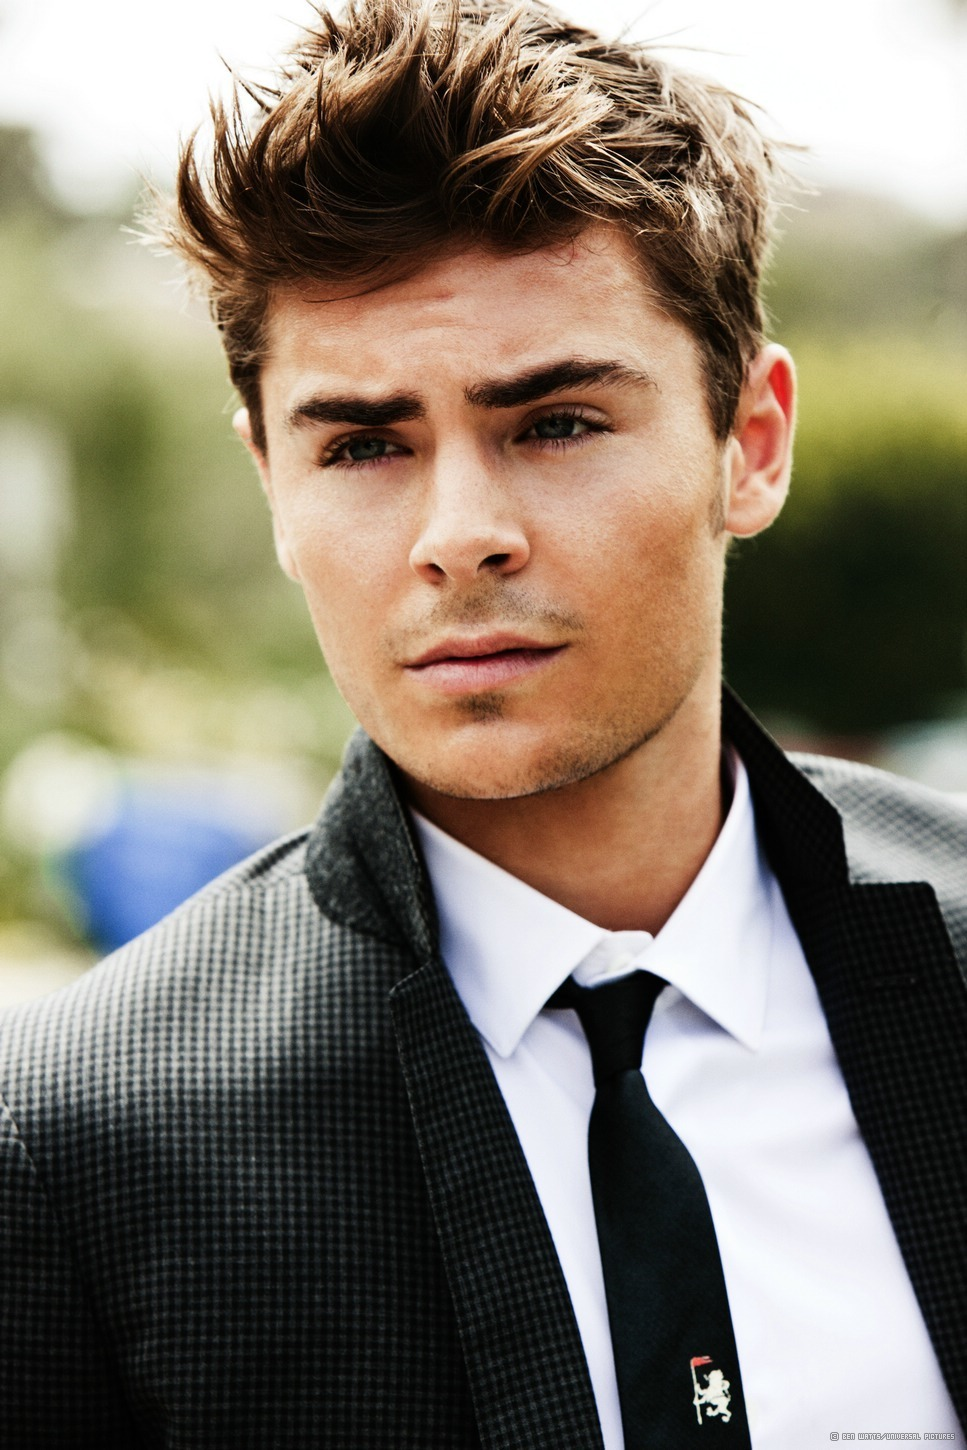 Zac Efron | Too Many Hot Guys